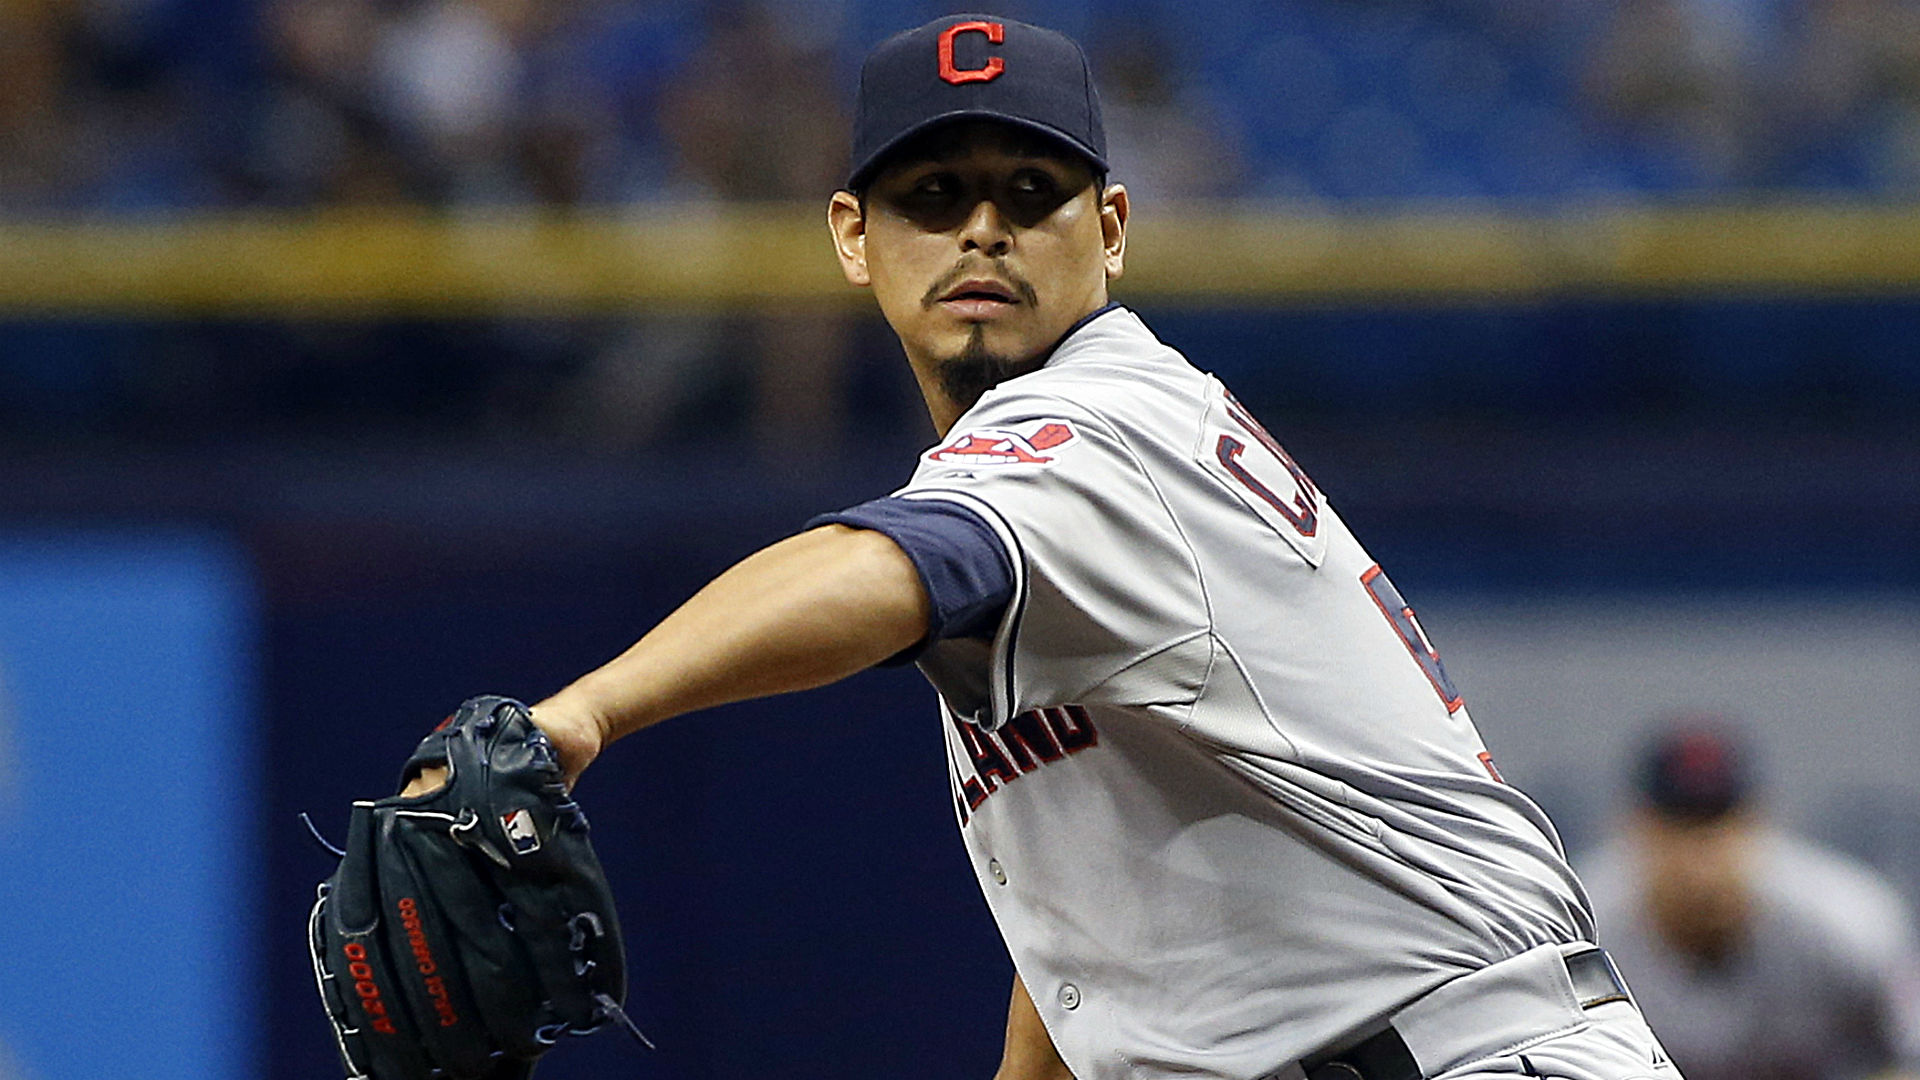 One strike away, Indians' Carlos Carrasco loses no-hitter in ninth inning vs. Rays